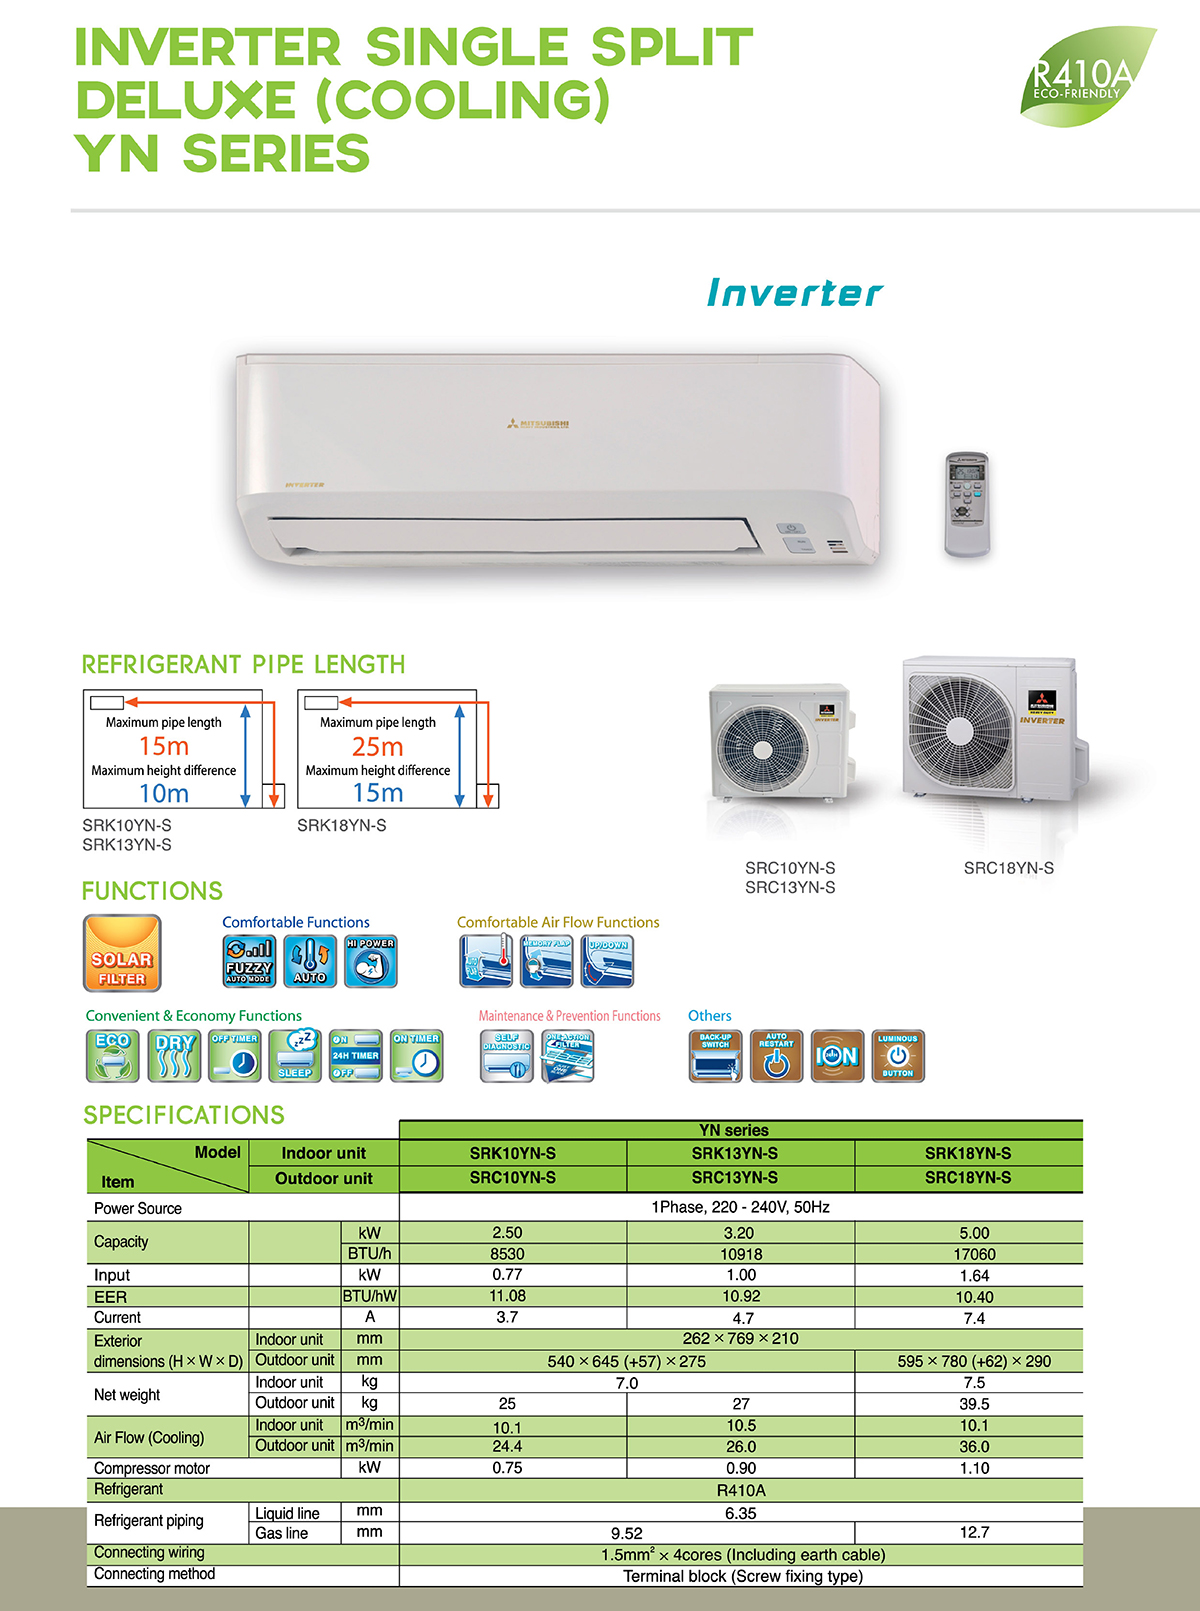 INVERTER SINGLE SPLIT PREMIUM ( COOLING) YN SERIES